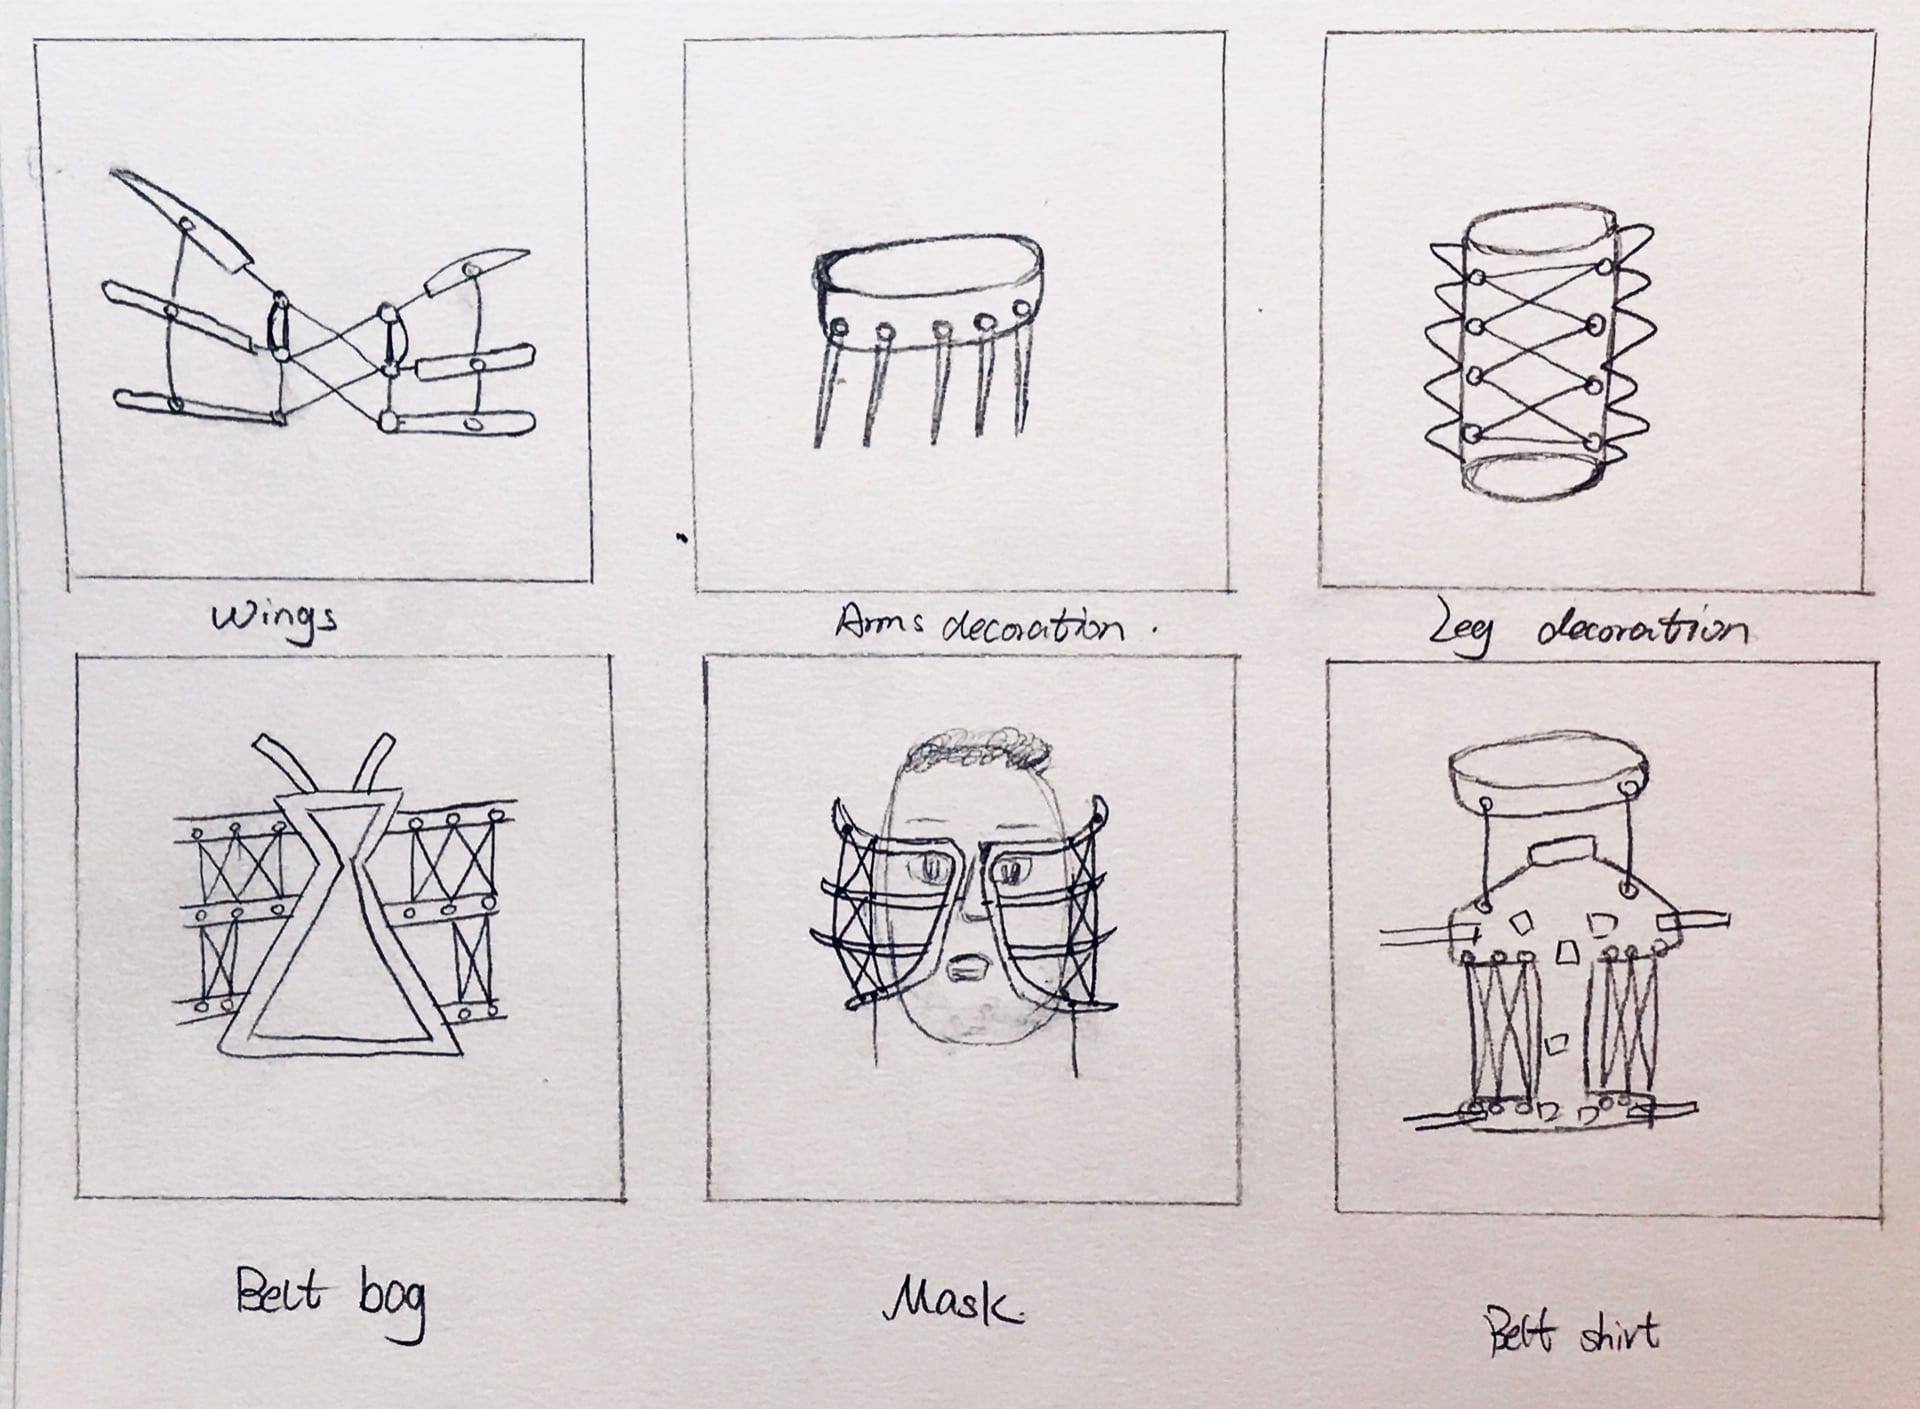 ASSIGNMENT #4 – Thumbnail Sketches